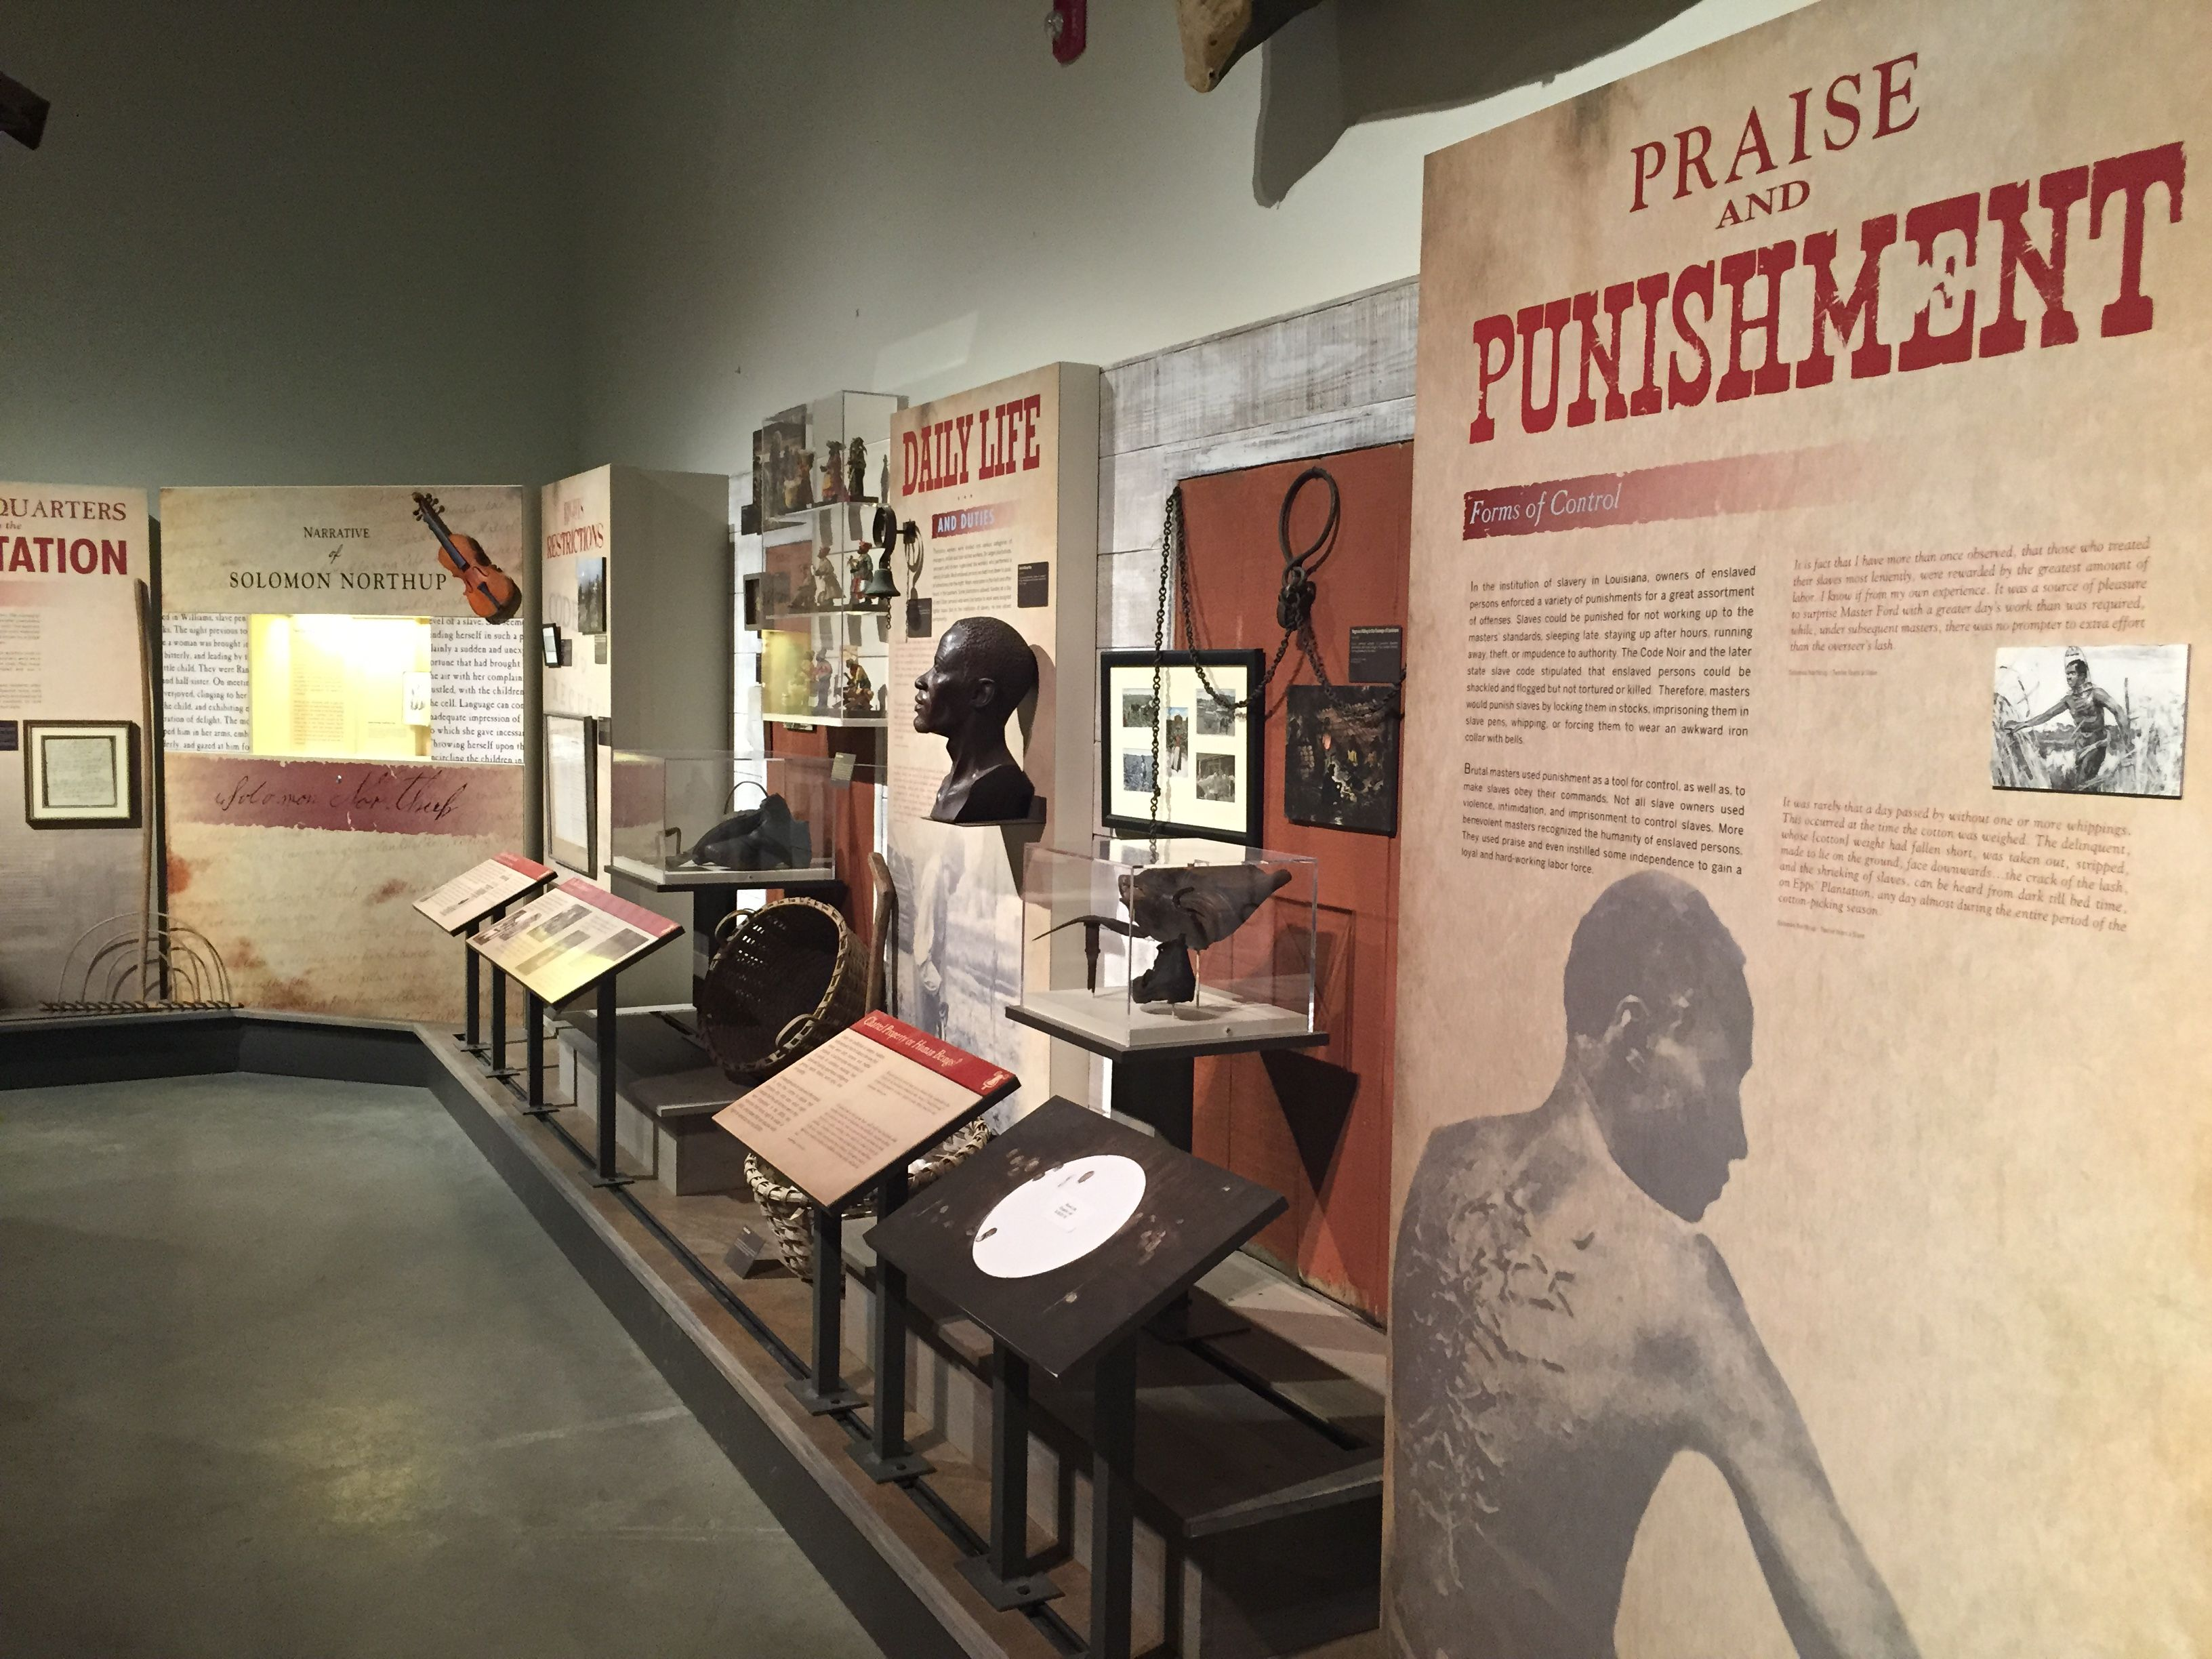 slavery museum exhibits - Google Search